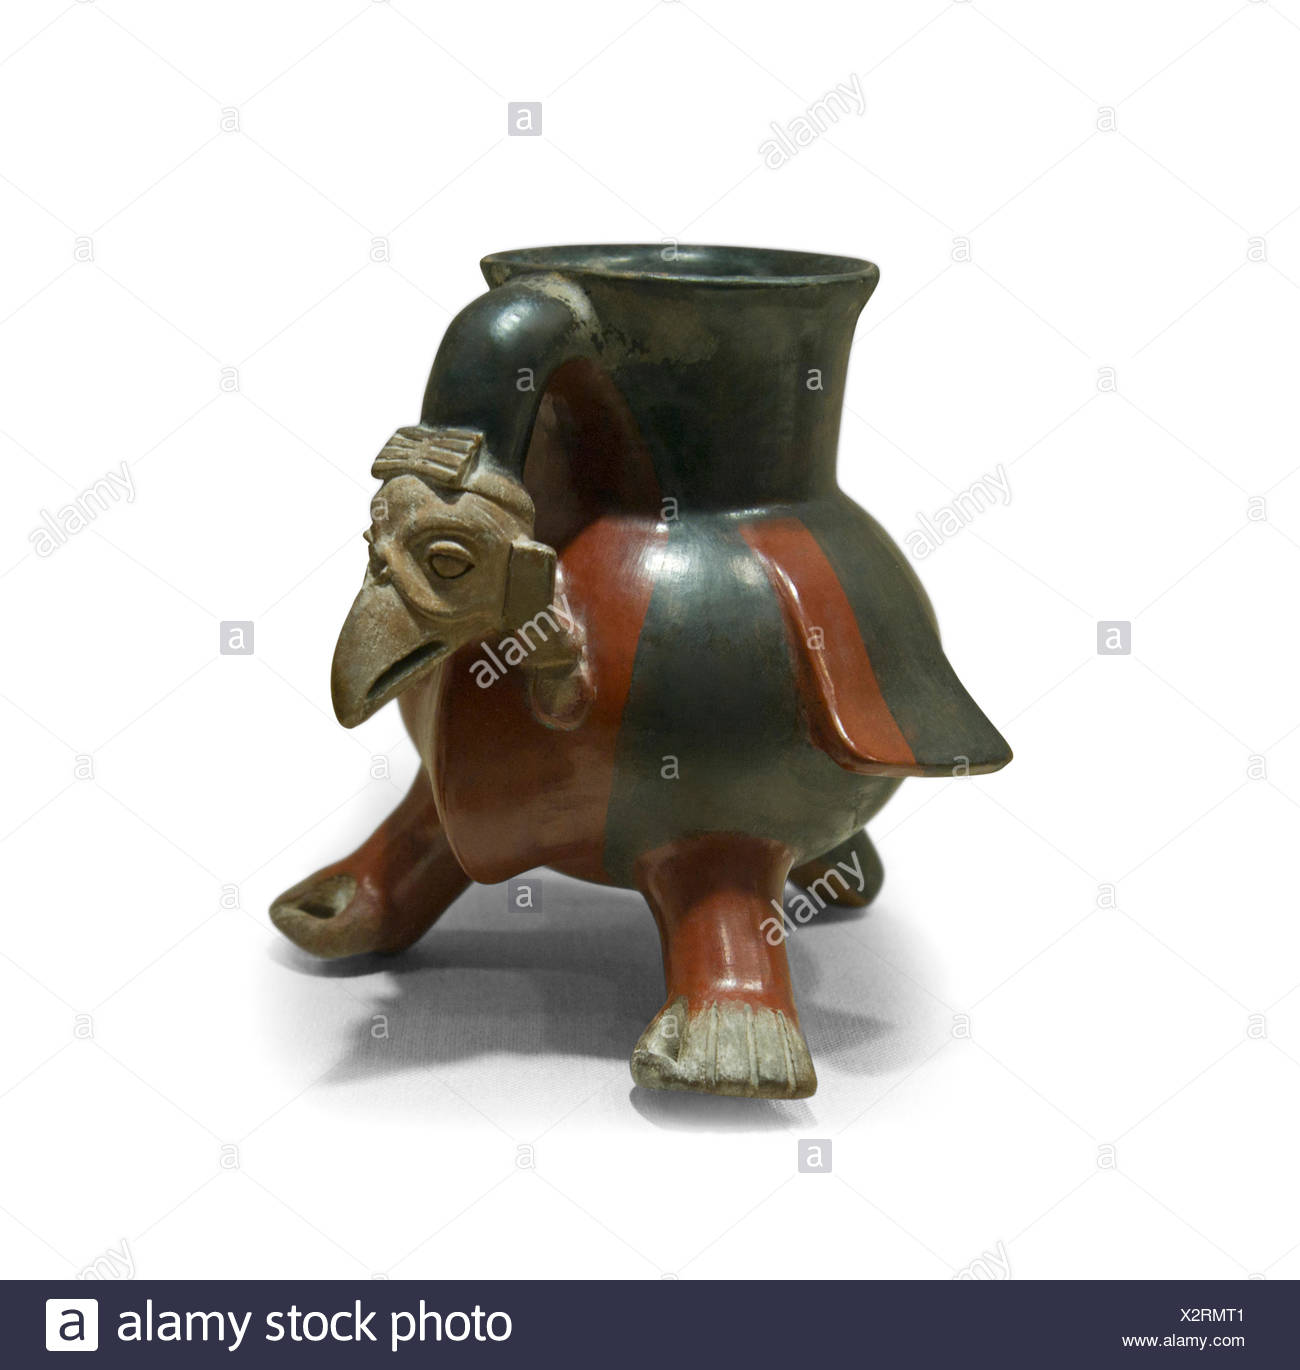 Aztec ceramic vulture shaped vessel dates to 14th to early 16th century from Mexico - Stock Image